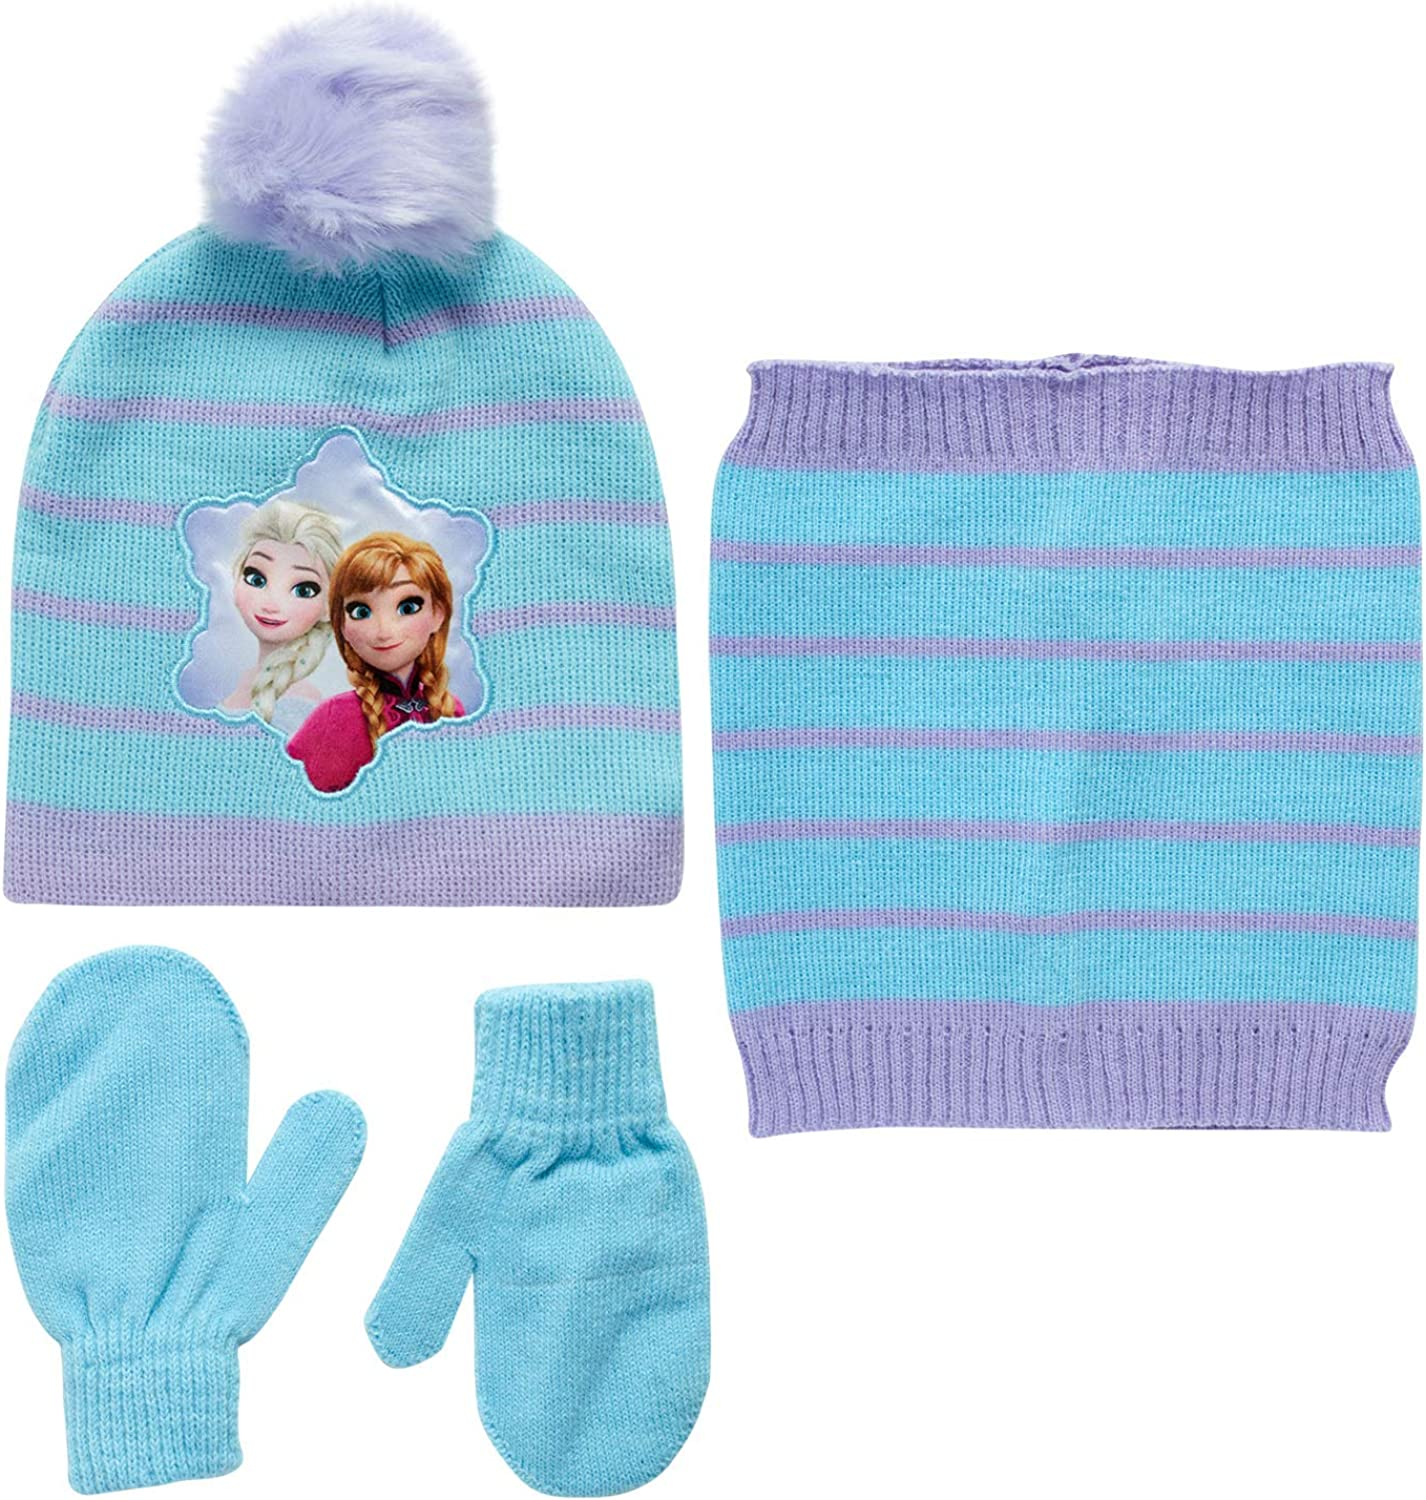 Disney Girls' Minnie Mouse or Frozen Winter Hat, Mittens, and Gaiter Scarf Three Piece Set: Clothing, Shoes & Jewelry